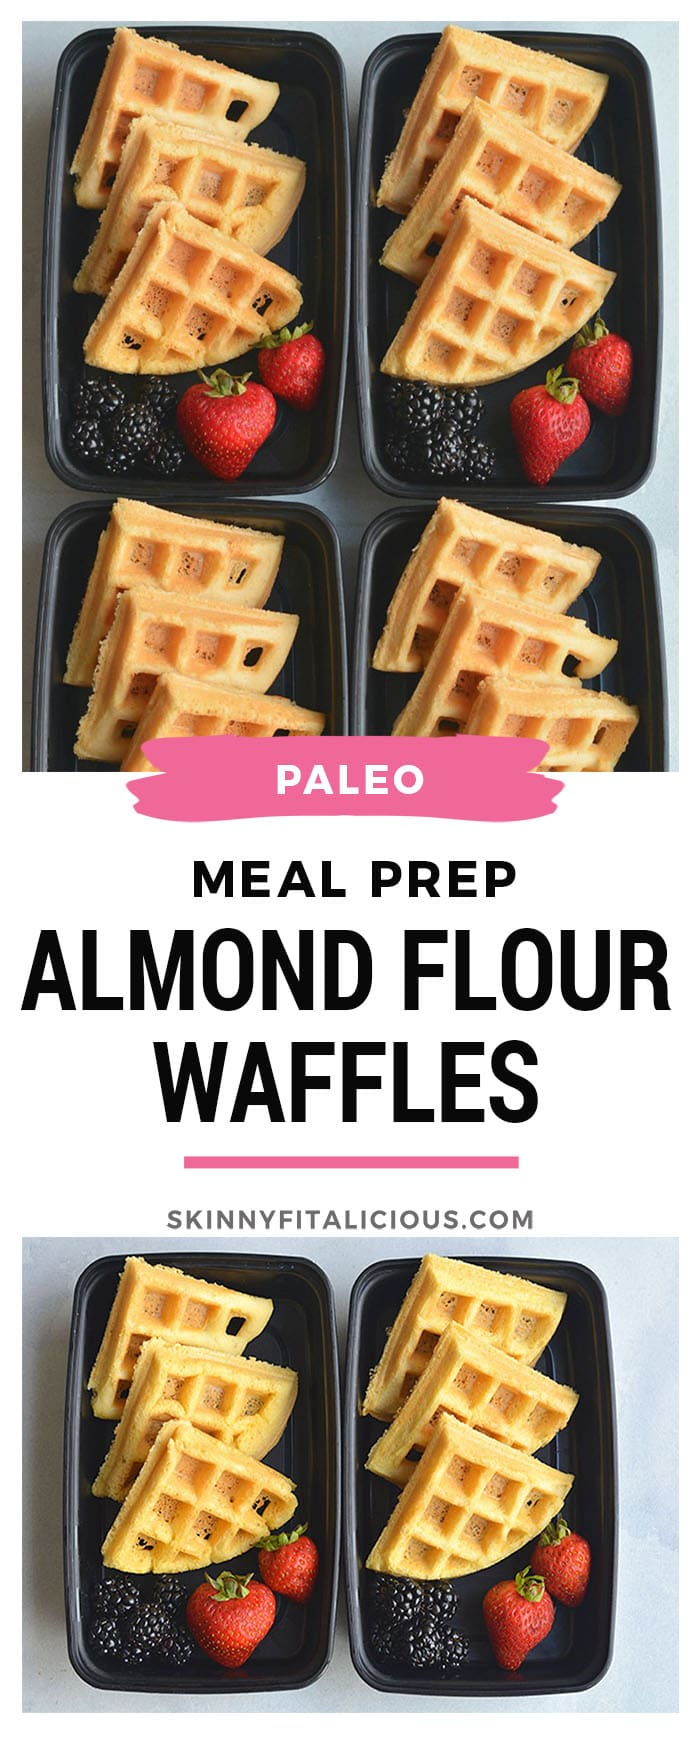 Meal Prep Almond Flour Waffles are a breeze tomake and rich in protein. Easy to make light and fluffy with a few healthy, dairy free ingredients. Great for an easy breakfast meal prep and freezable too! Paleo + Gluten Free